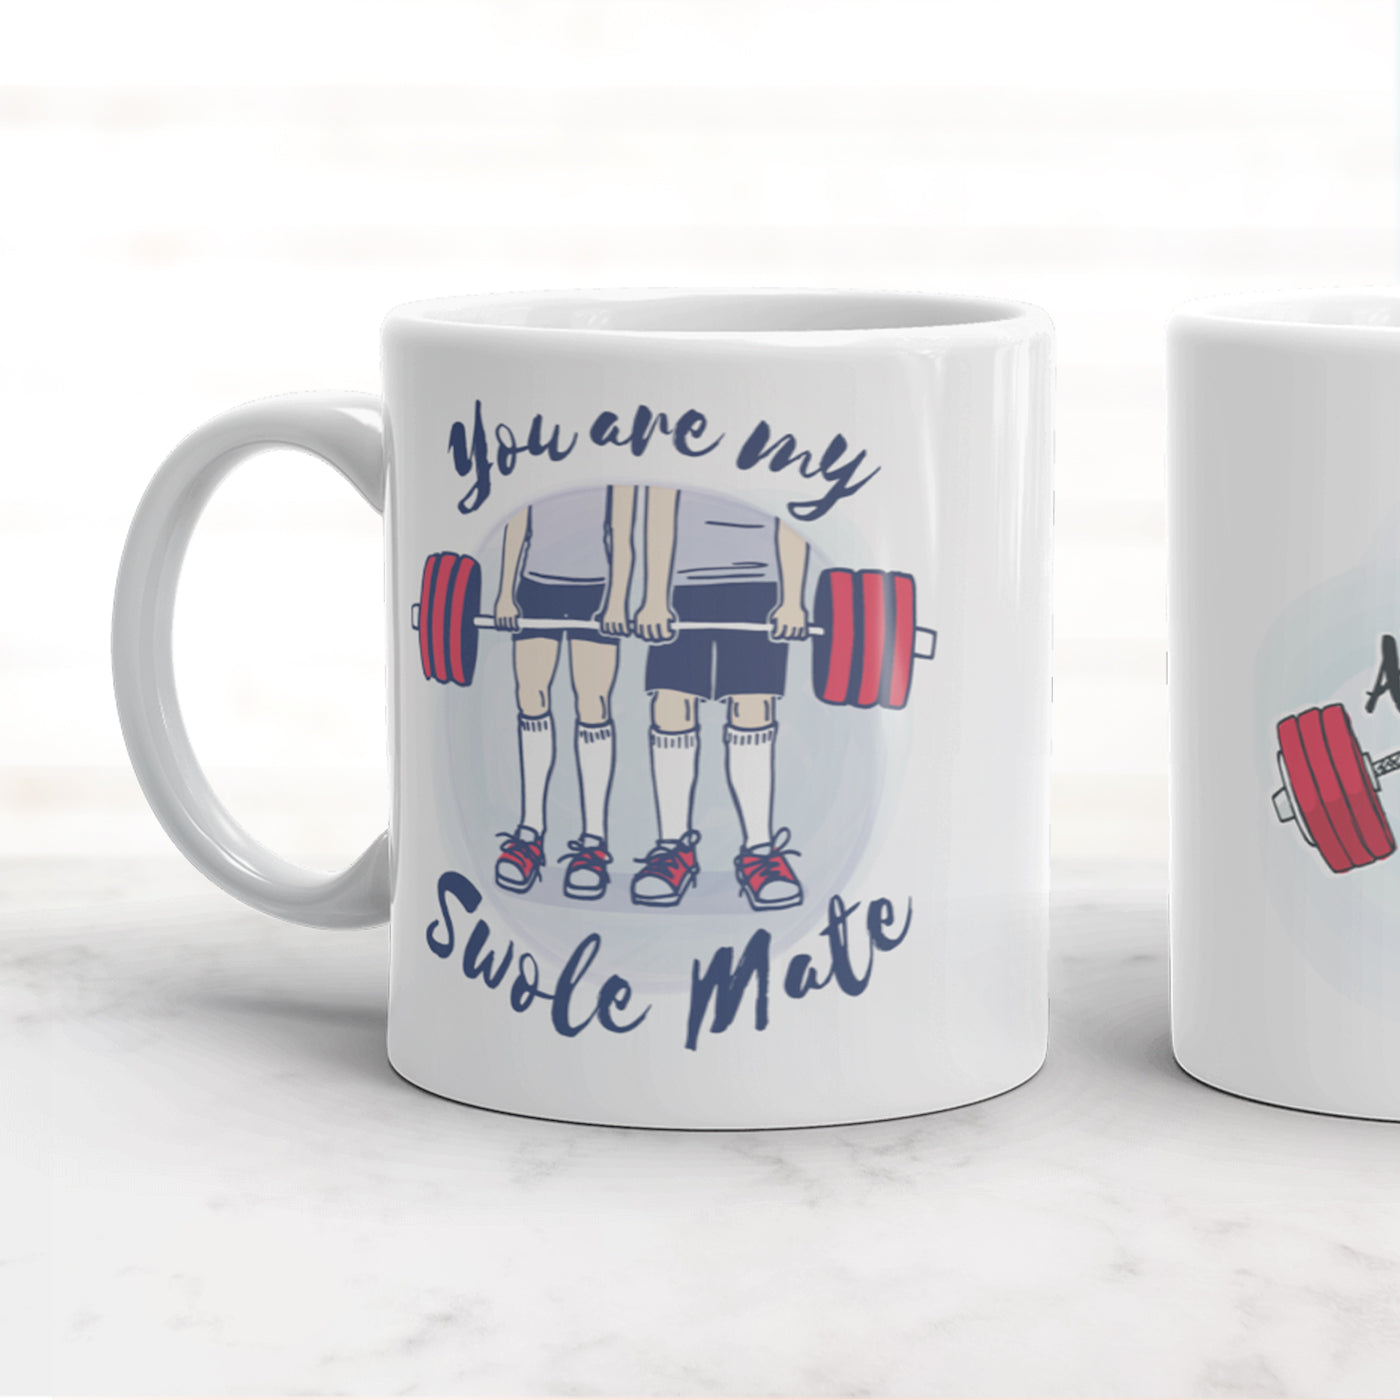 Customized Swole Mate Mug